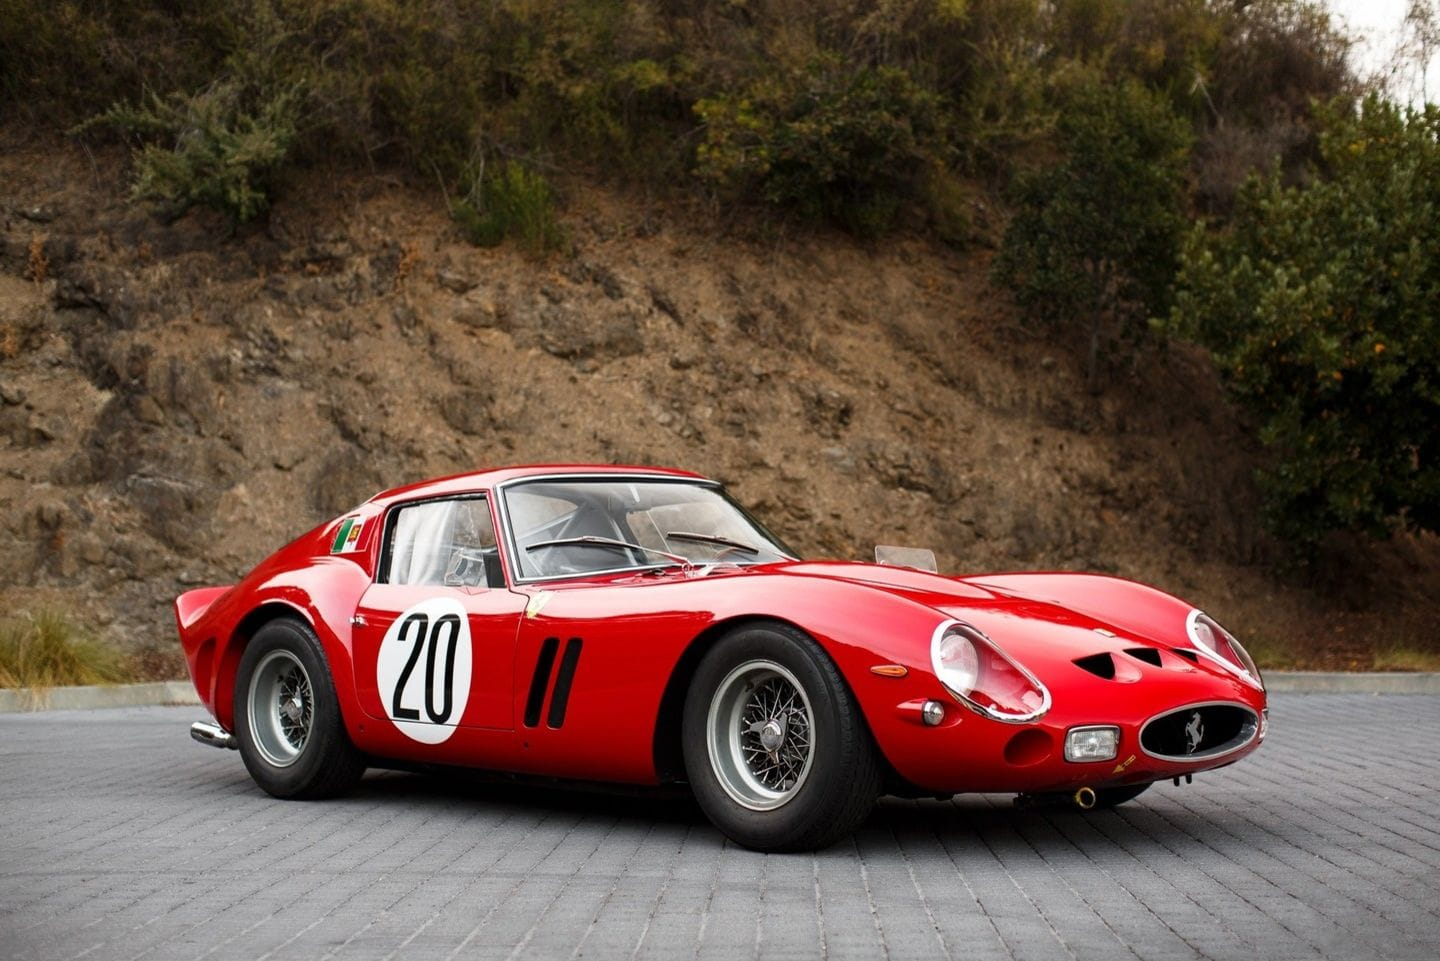 Ferrari 250 GTO retro supercar recognised art